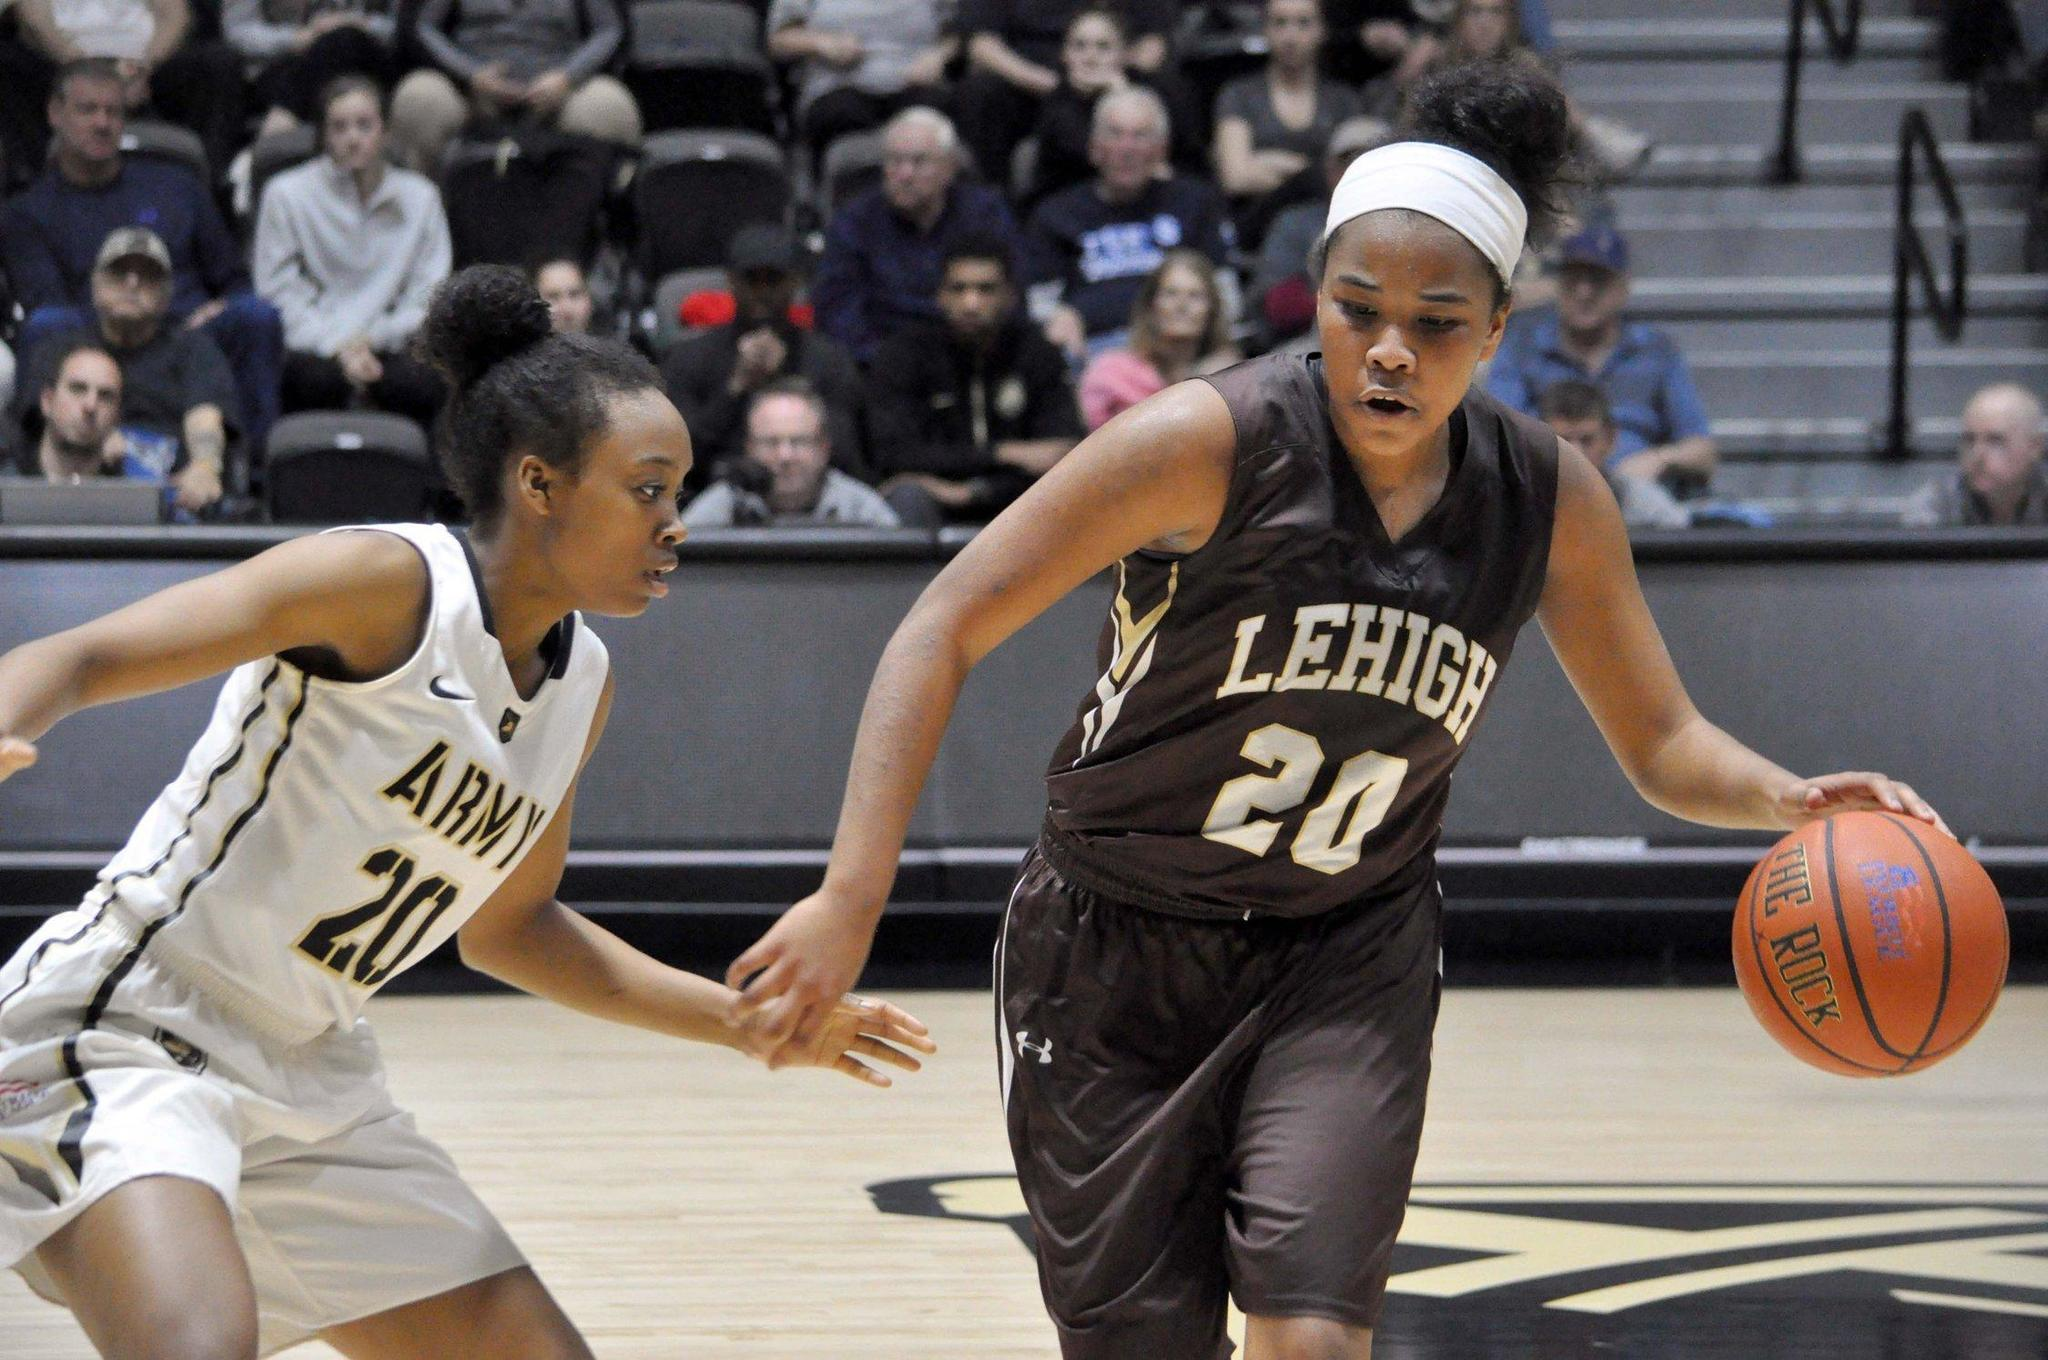 lehigh women Espnlv - espn radio of the lehigh valley 1160, 1230 and 1320 am scheduled games nov 11 (sat) play4kay / national girls and women in sports day box score.